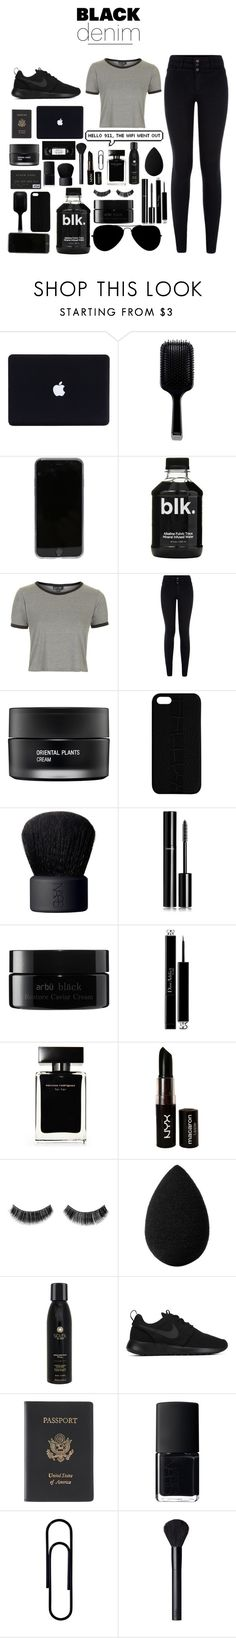 """""""Black Denim"""" by lydia-5459 ❤ liked on Polyvore featuring GHD, Topshop, New Look, Koh Gen Do, Maison Takuya, NARS Cosmetics, Chanel, arbÅ«, Christian Dior and Narciso Rodriguez"""